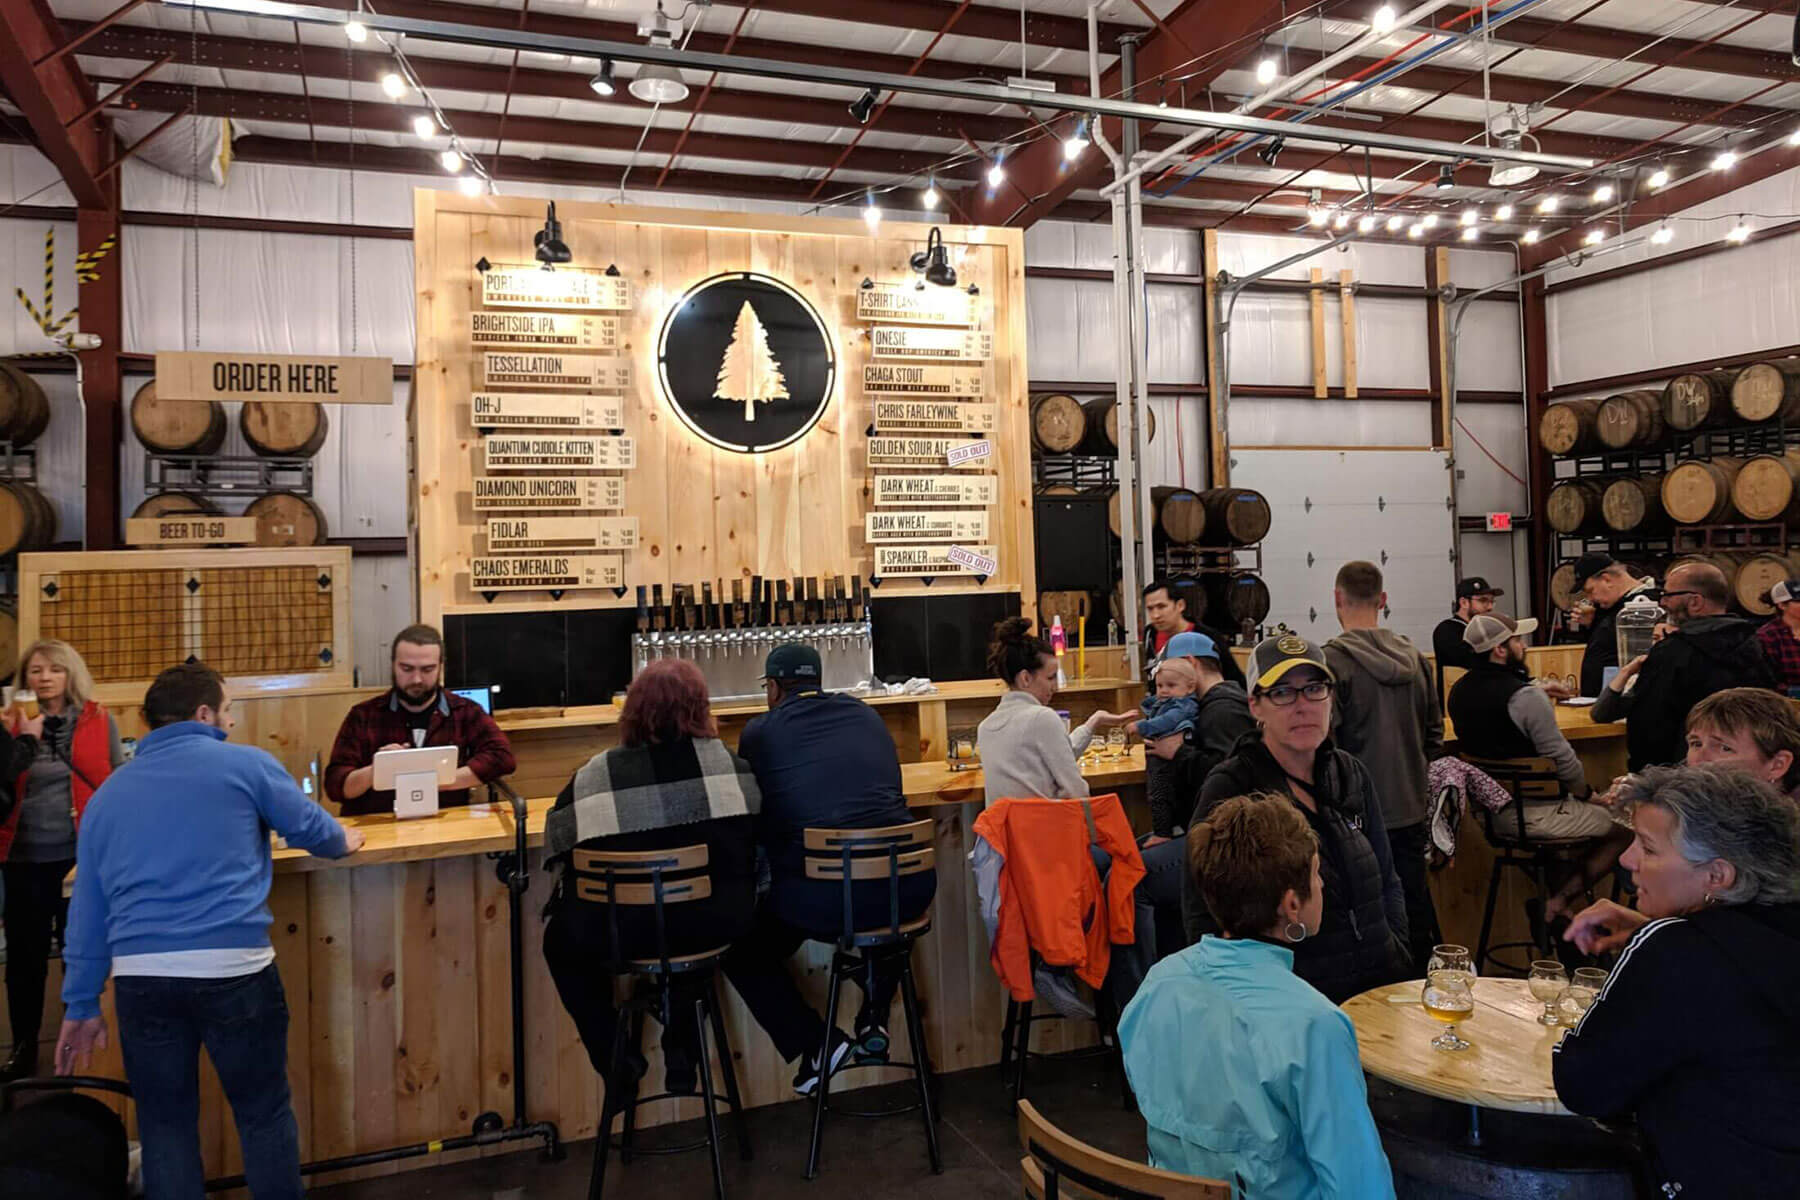 Inside the taproom at Lone Pine Brewing Company location in Gorham, Maine